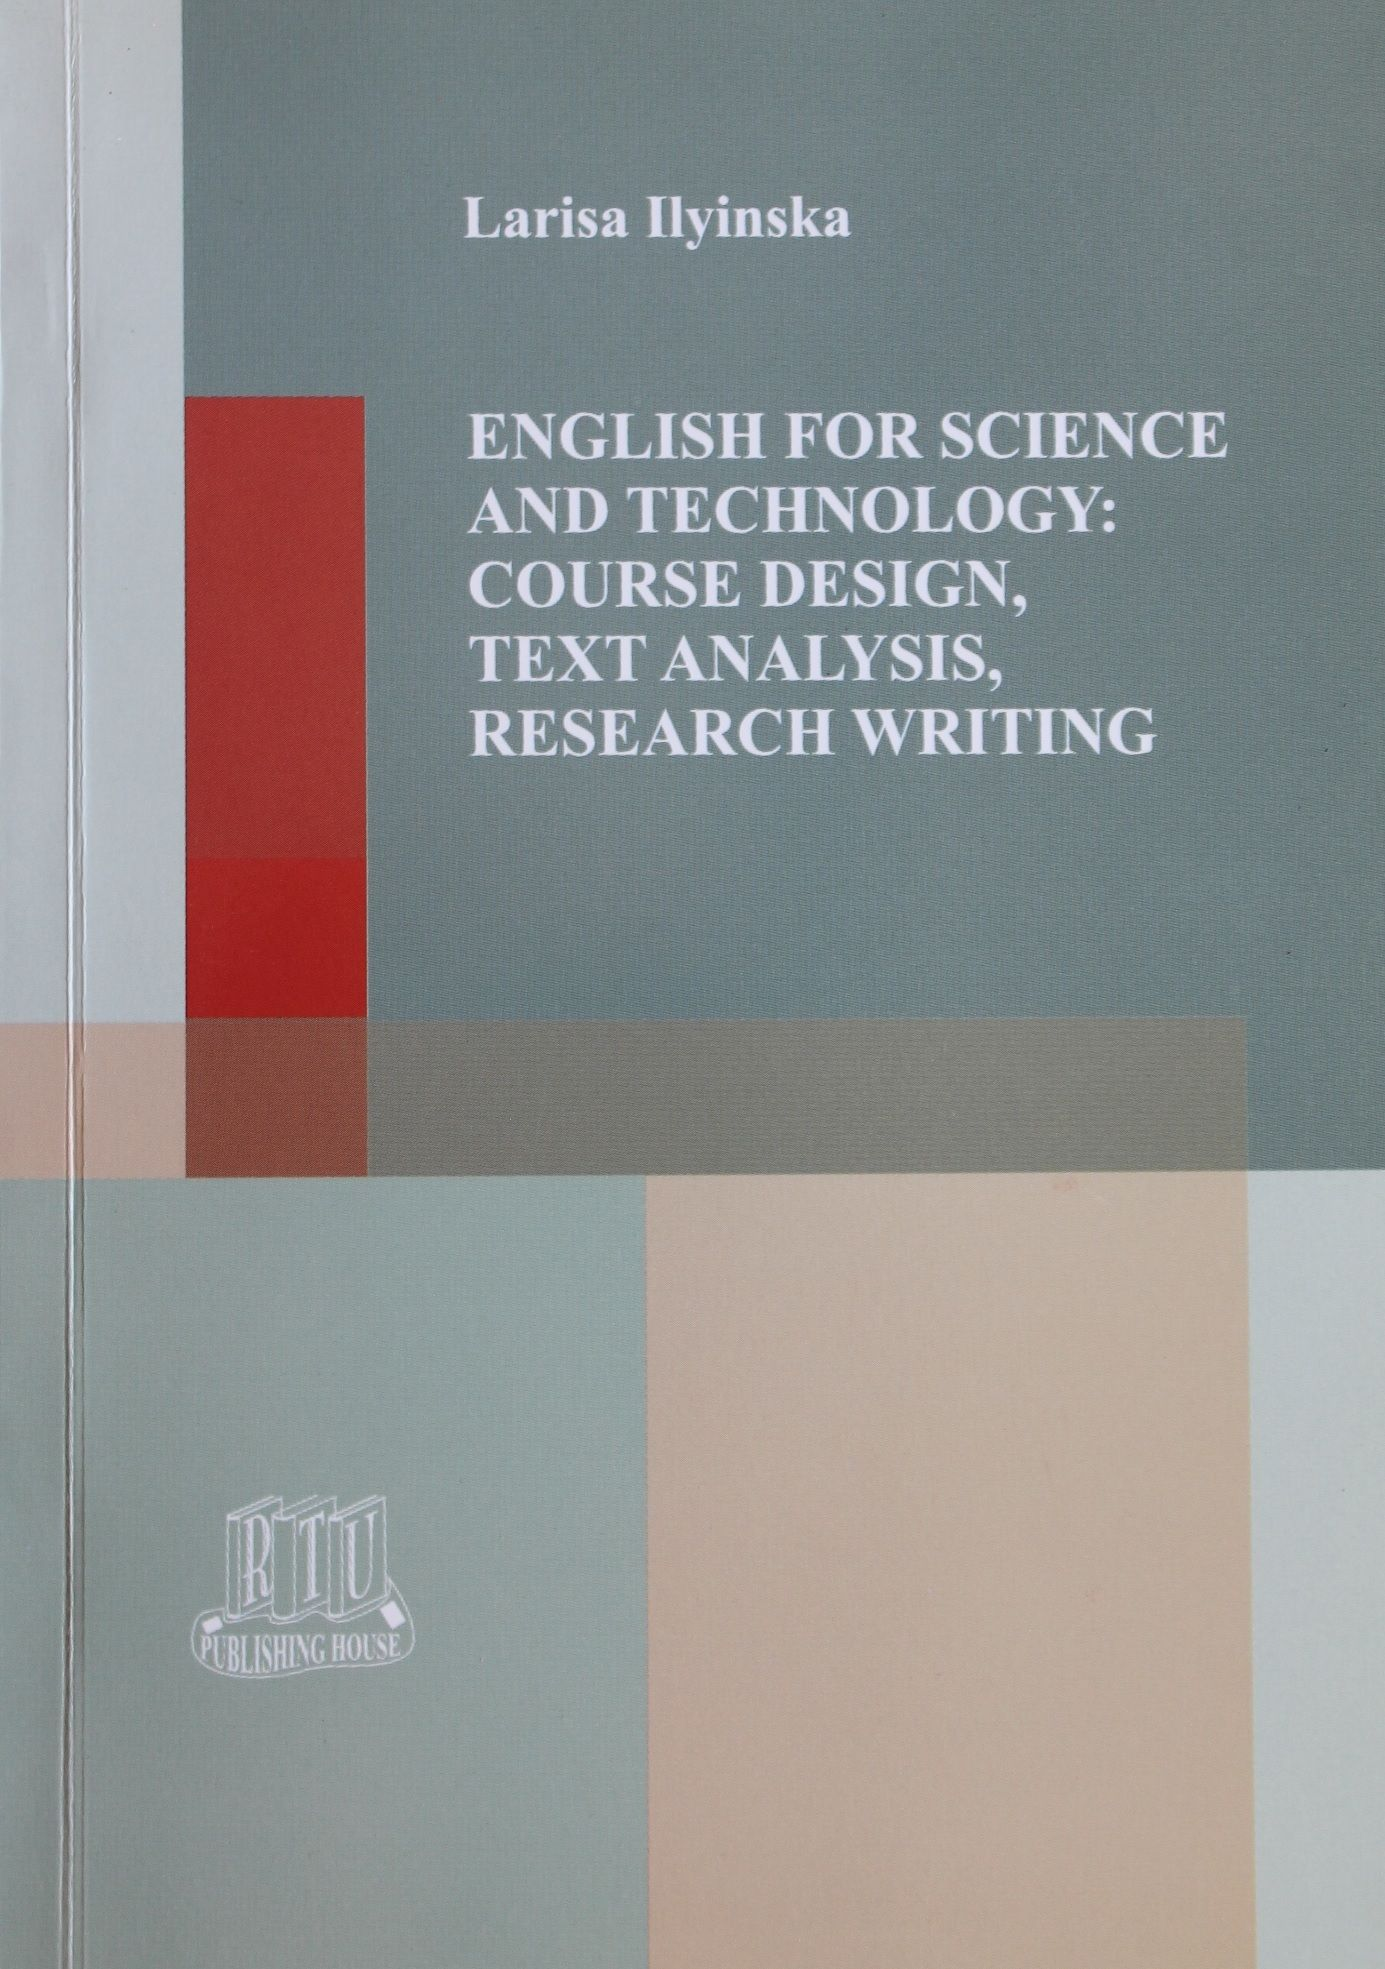 English for Science and Technology: Course Design, Text Analysis, Research Writing